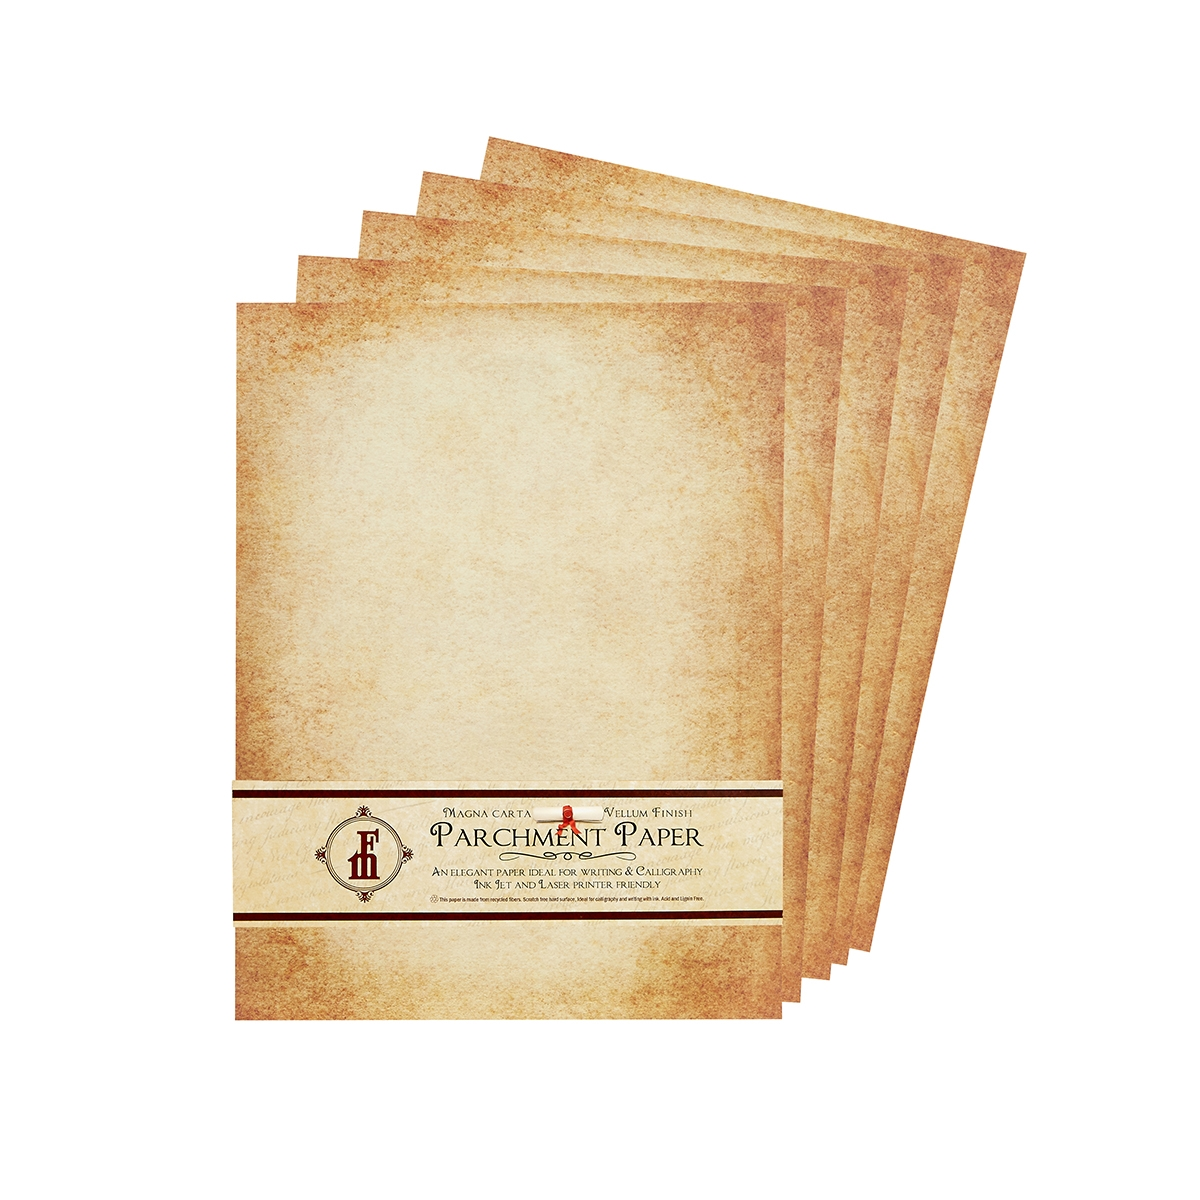 aged parchment stationery great for certificates menus scrolls